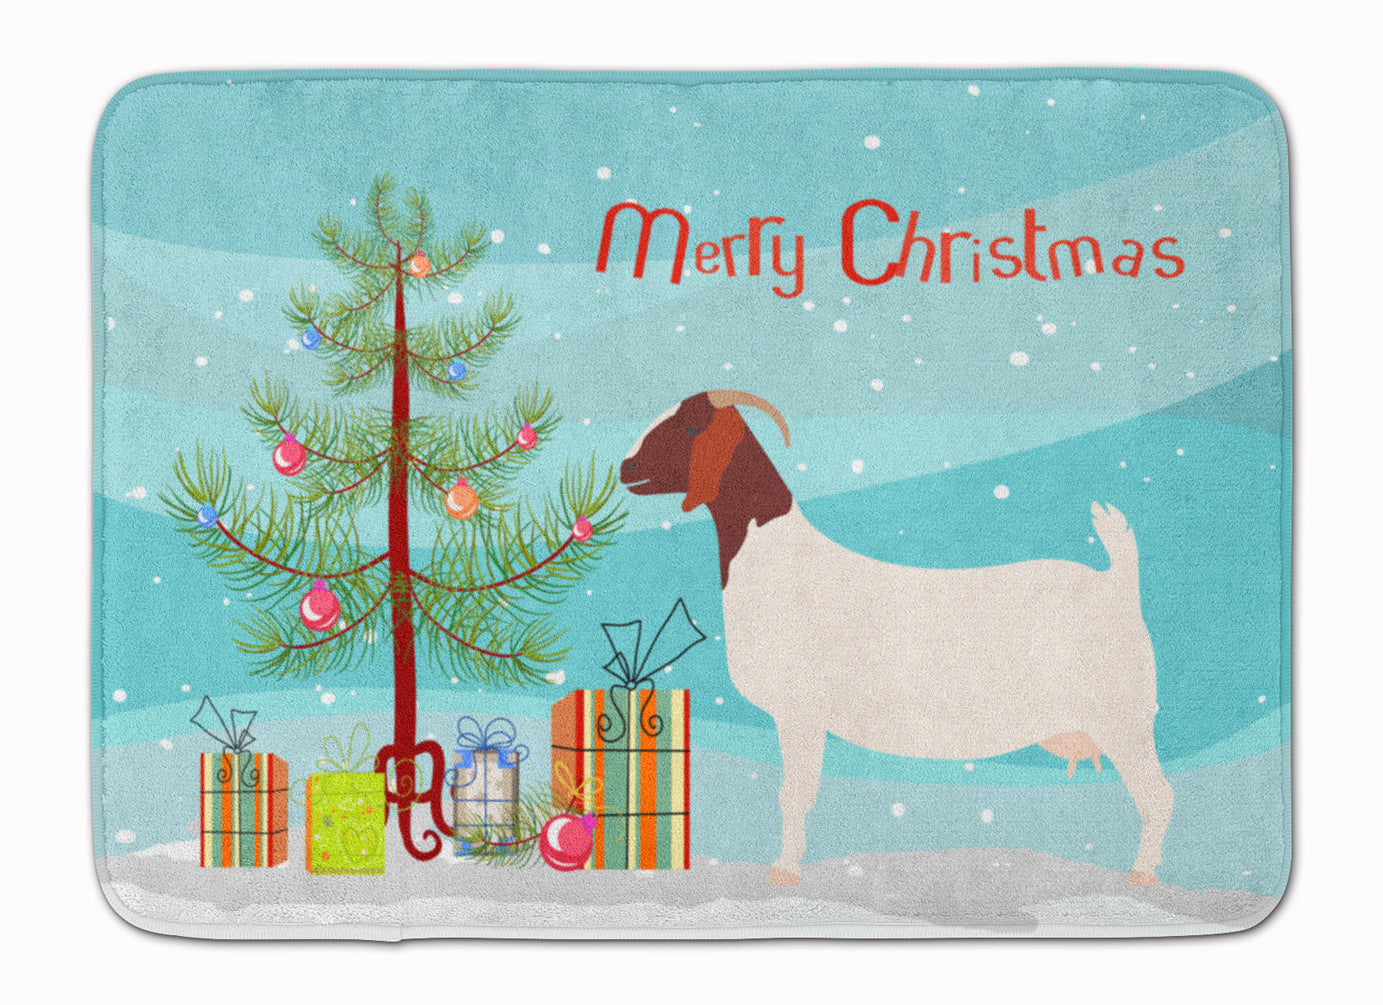 Boer Goat Christmas Machine Washable Memory Foam Mat BB9253RUG by Caroline's Treasures